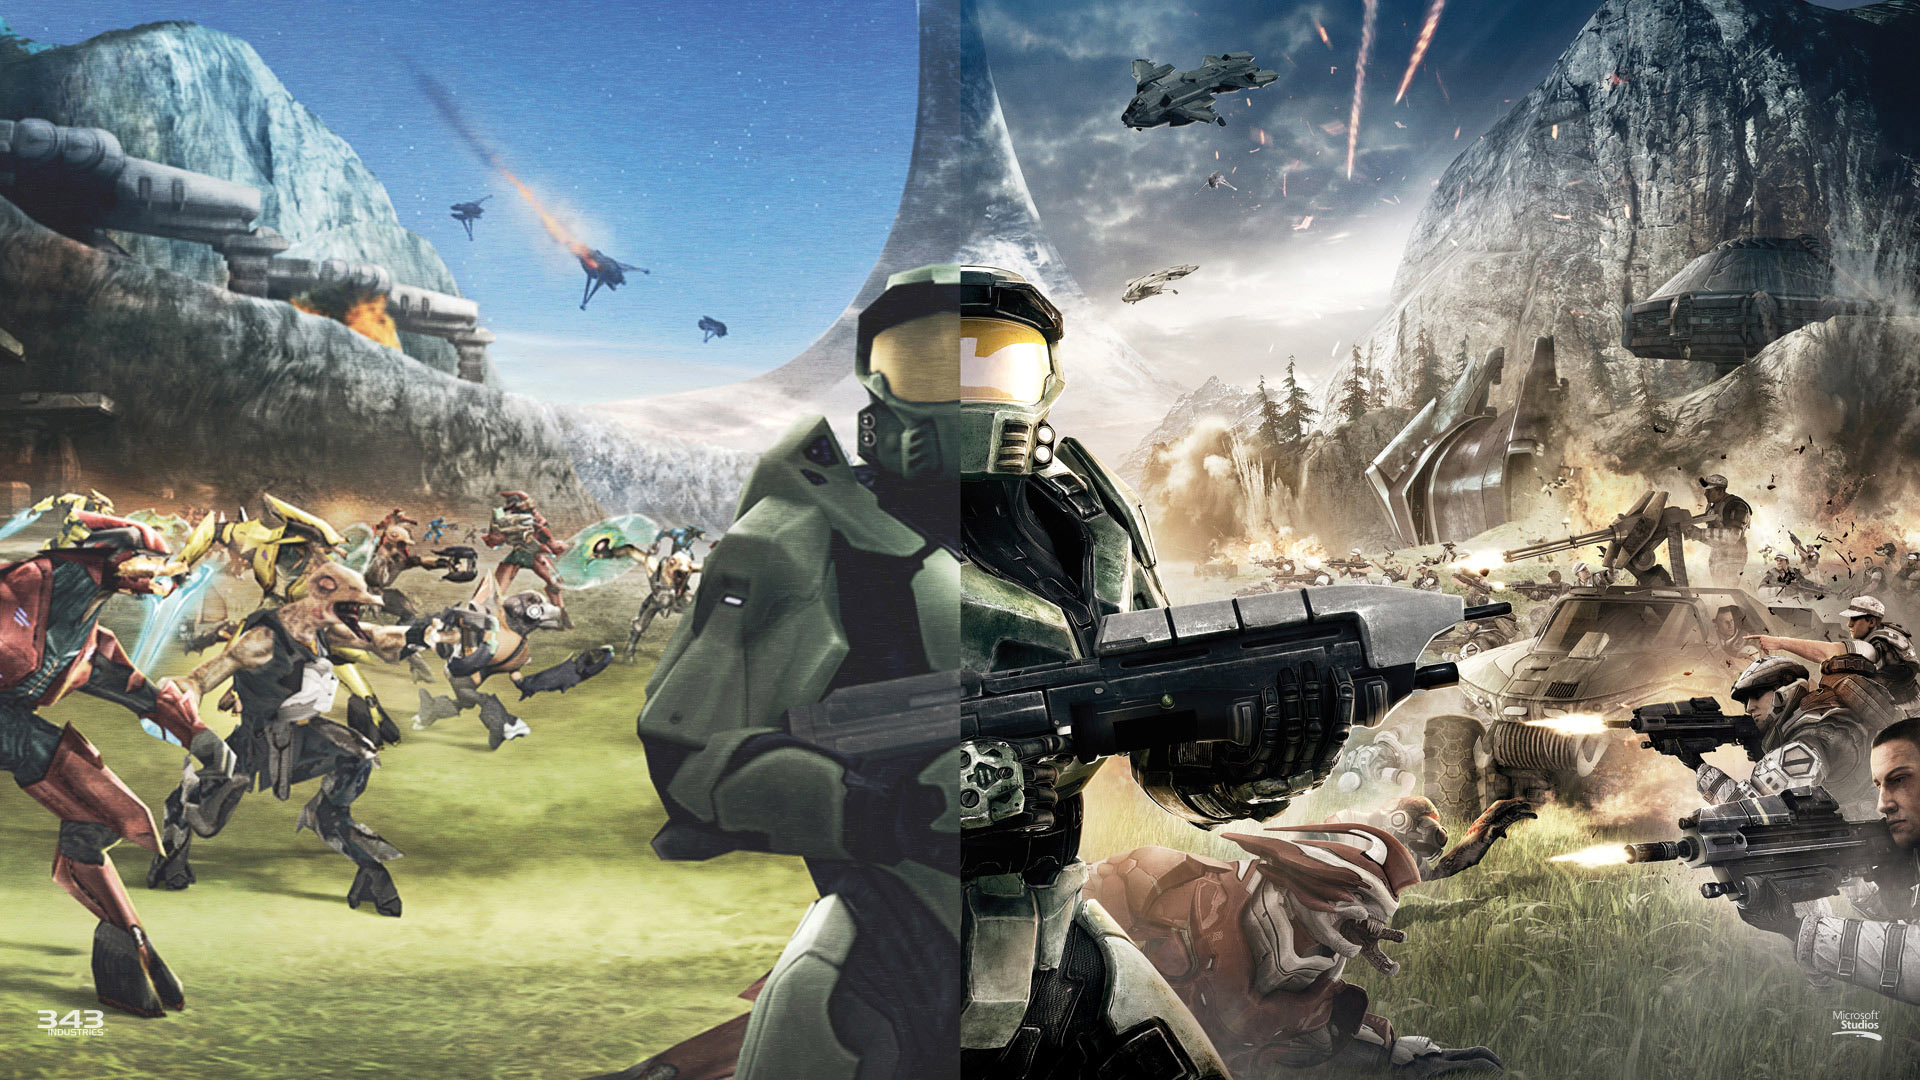 Games Wallpapers   Halo Combat Evolved 10 Years Anniversary wallpaper 1920x1080